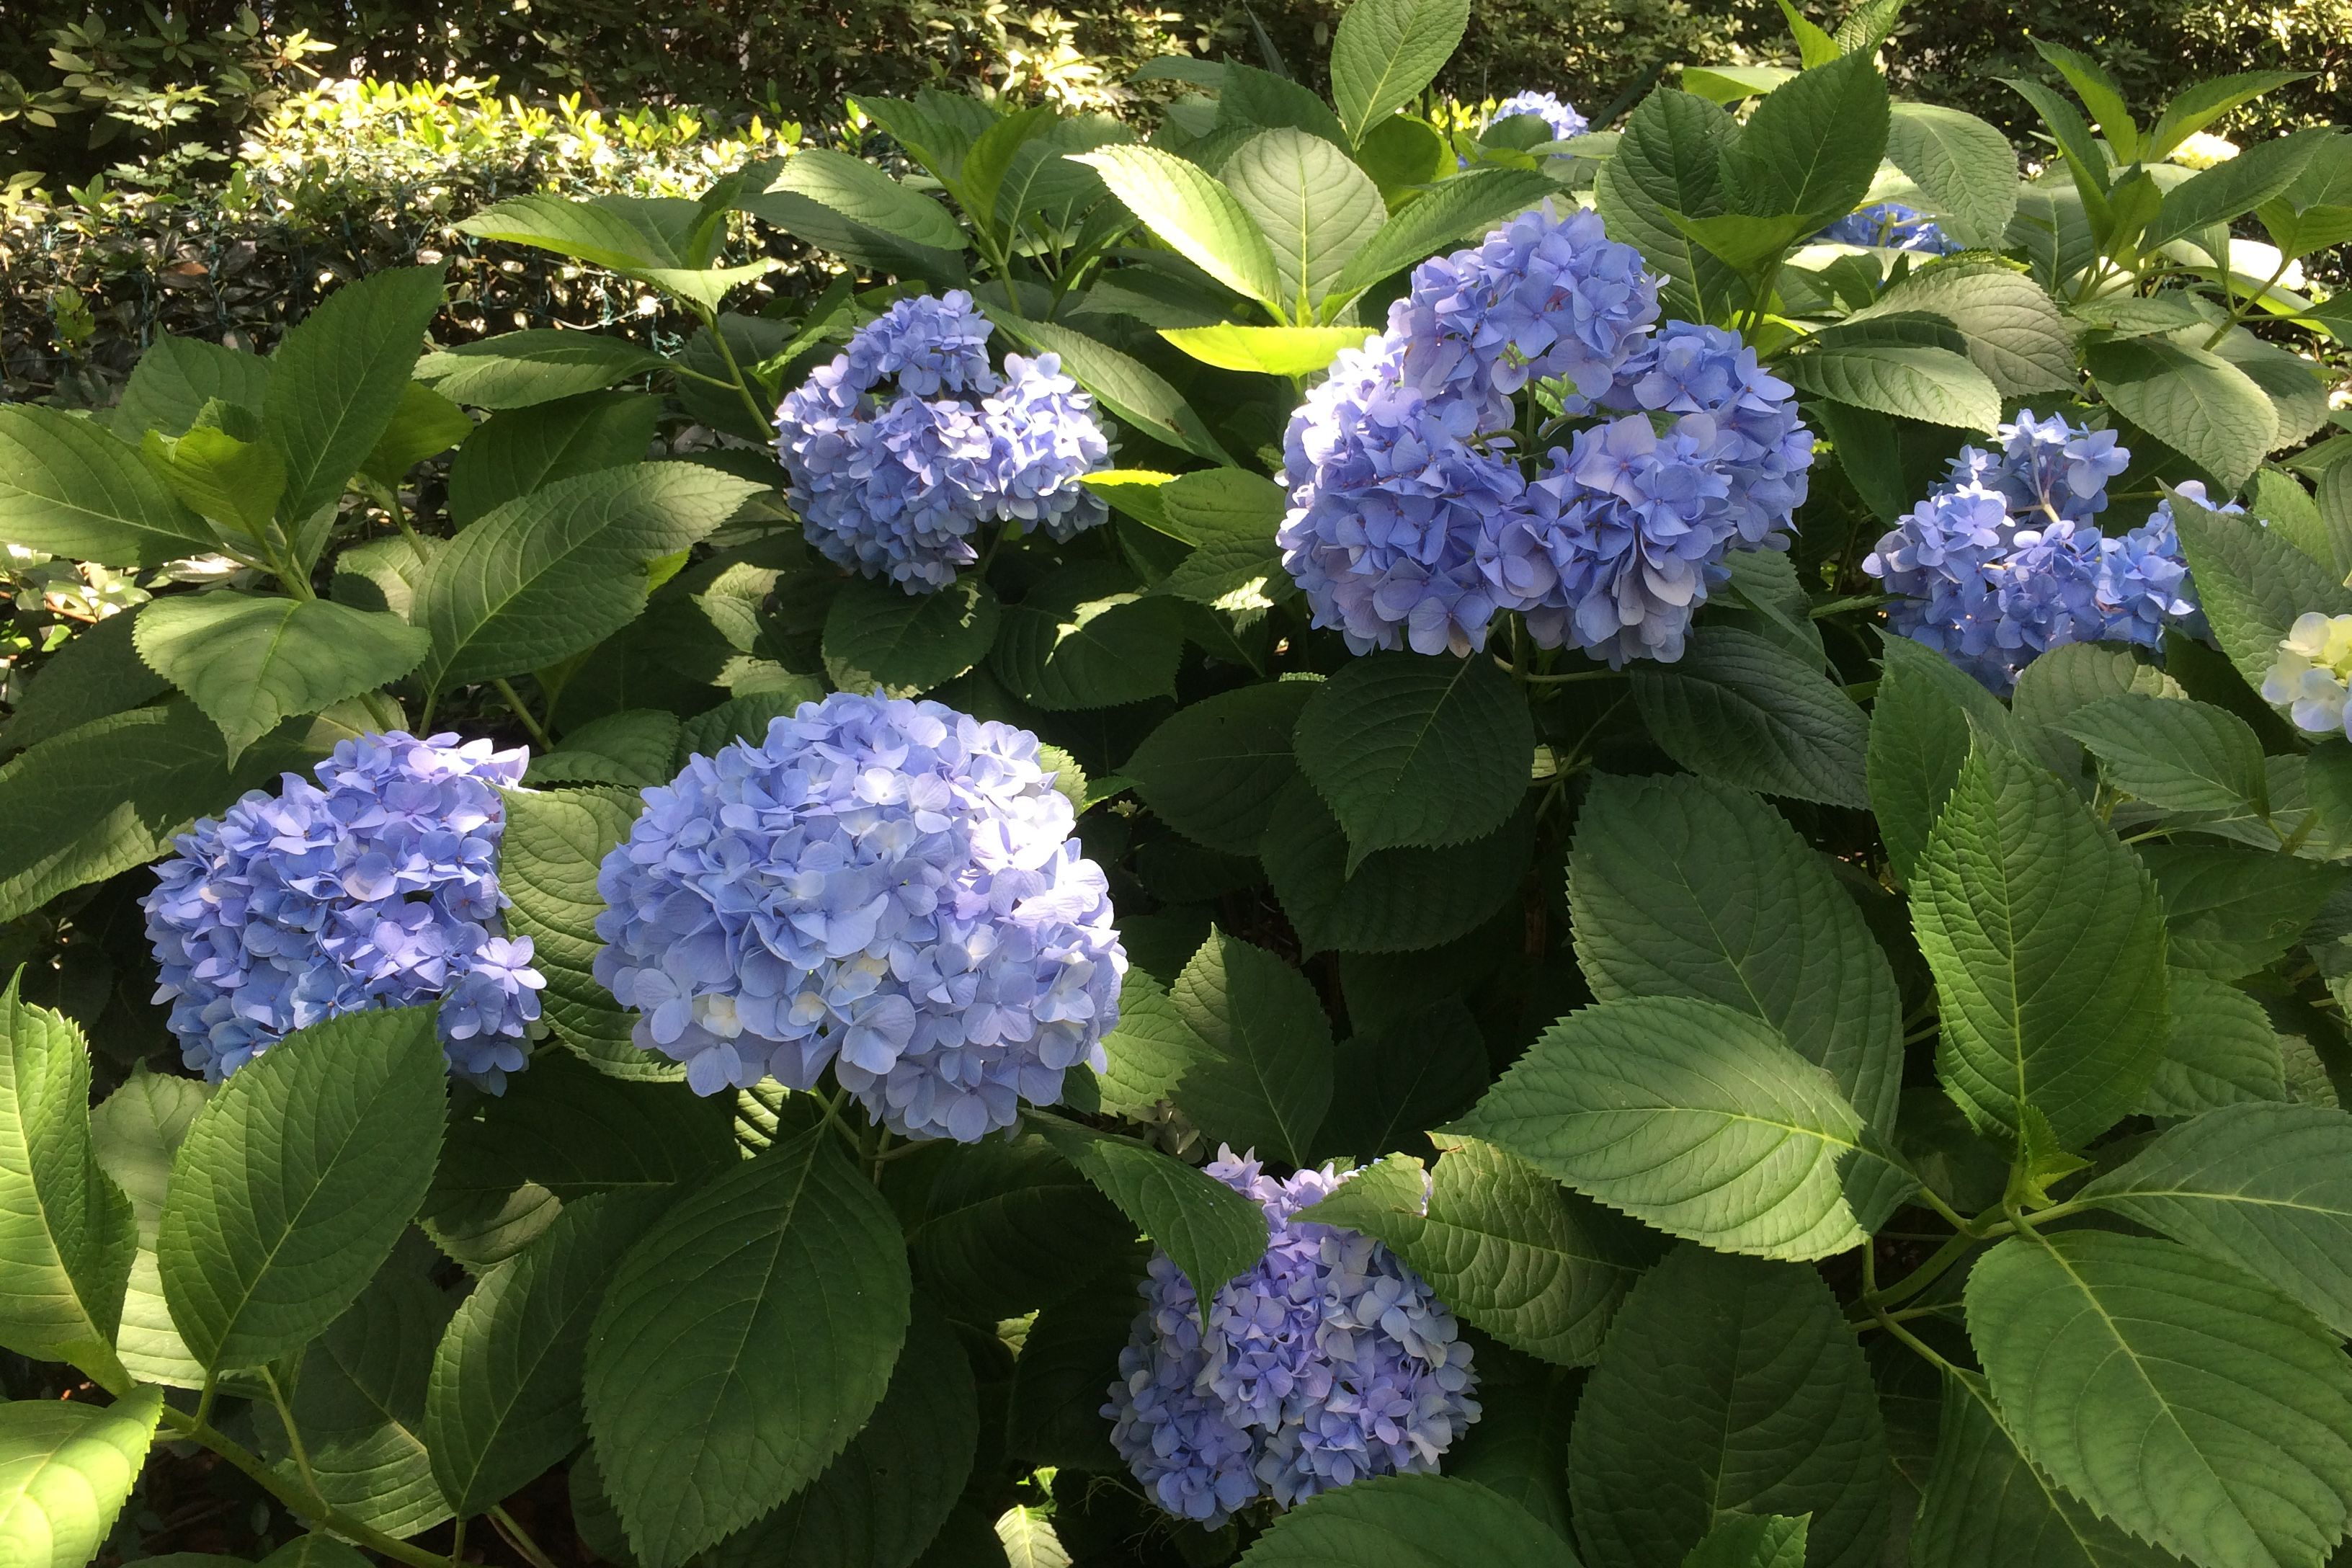 What's Wrong With My Hydrangea?